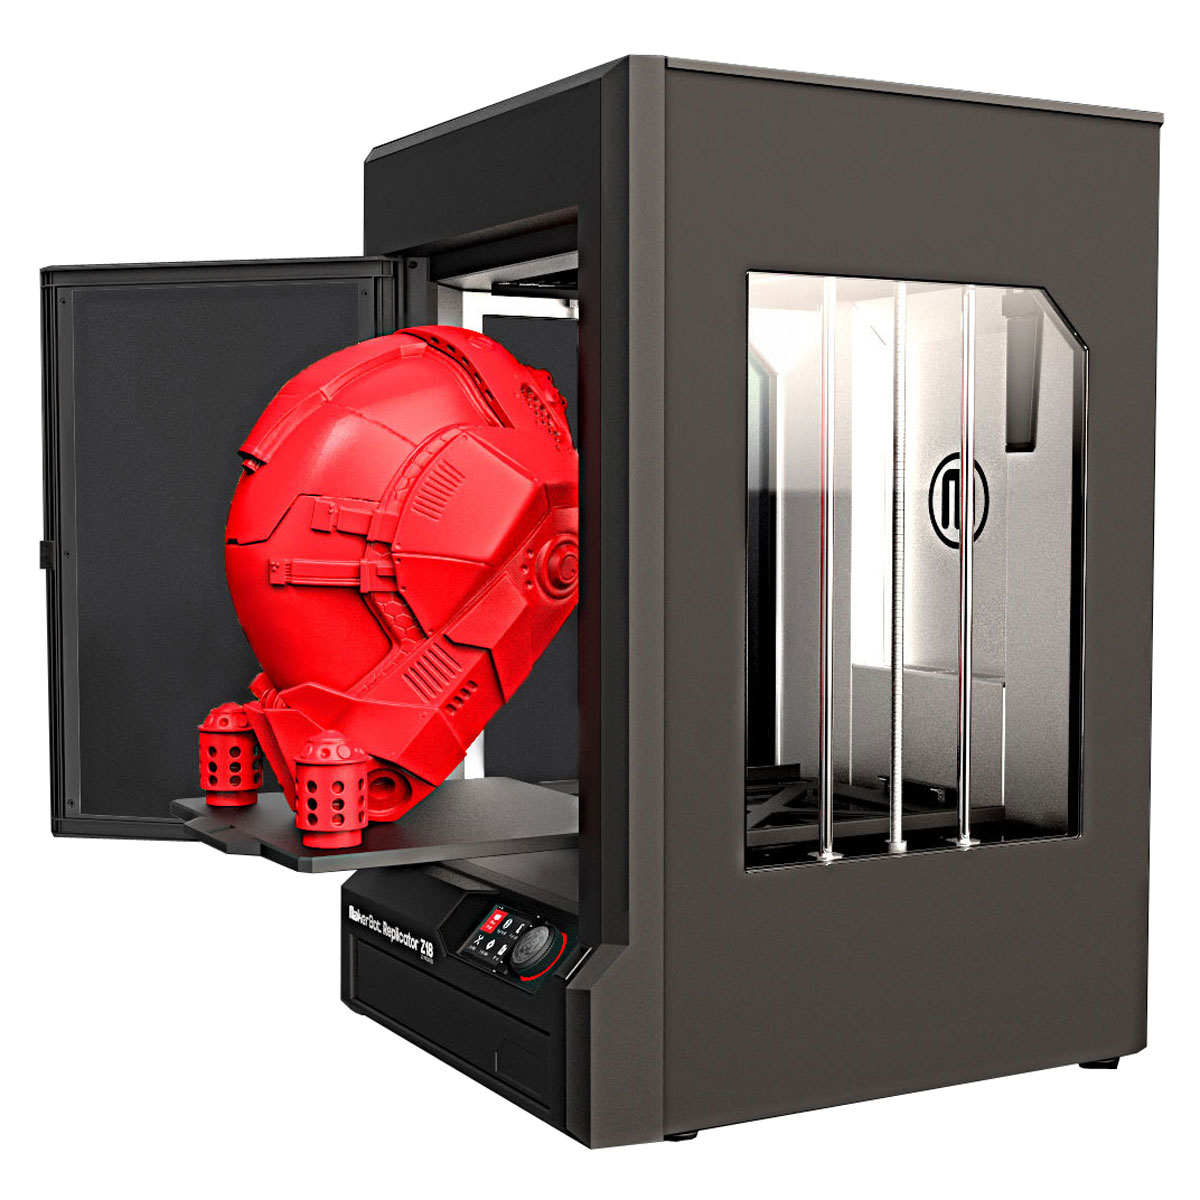 makerbot z18 imprimante 3d makerbot sur ldlc. Black Bedroom Furniture Sets. Home Design Ideas